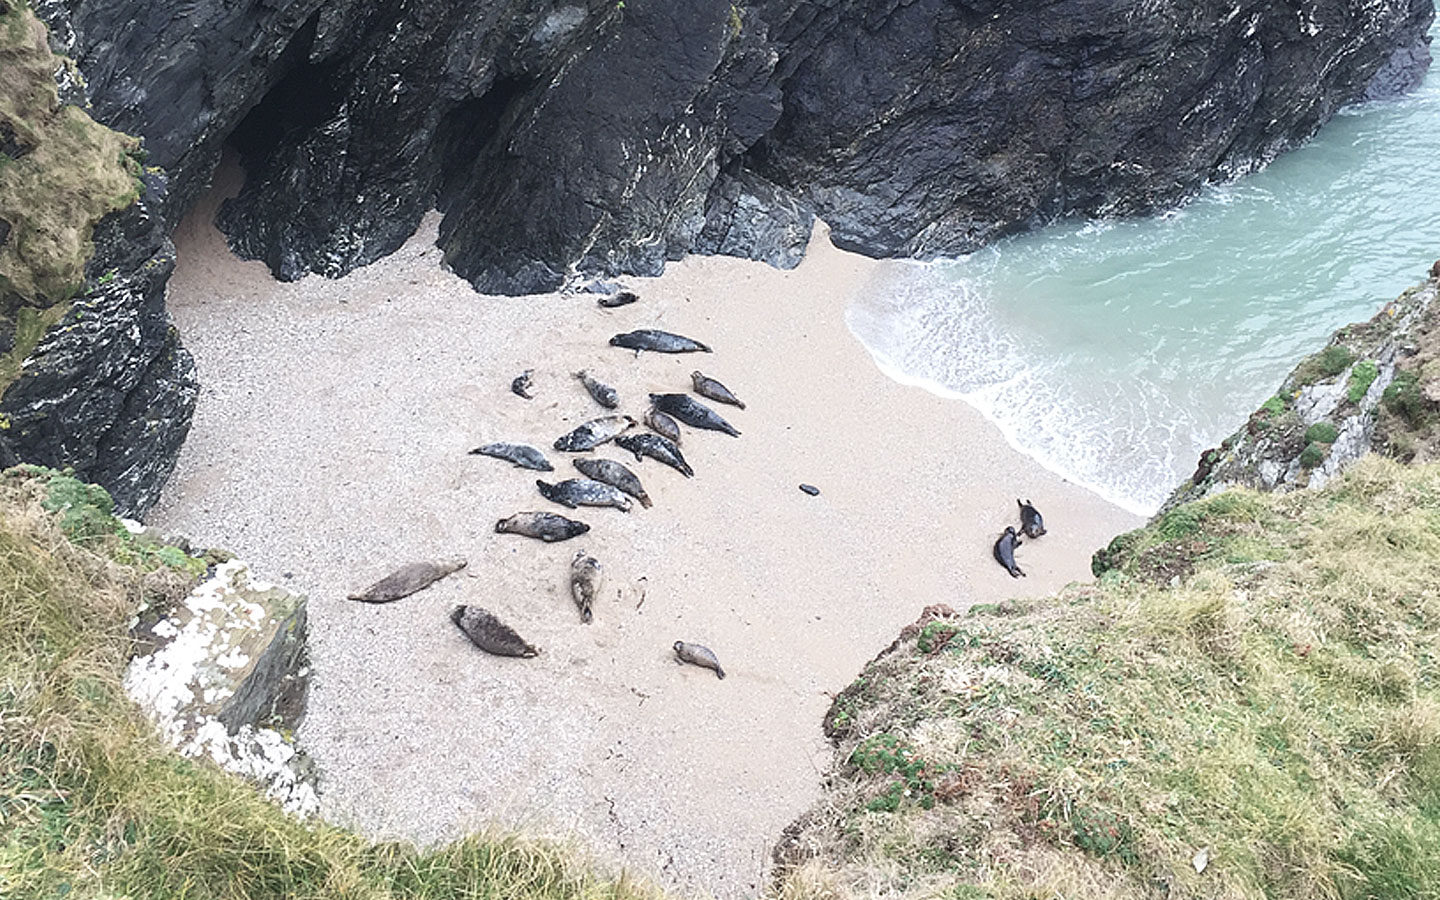 seals in cove at pollyjoke beach in cornwall